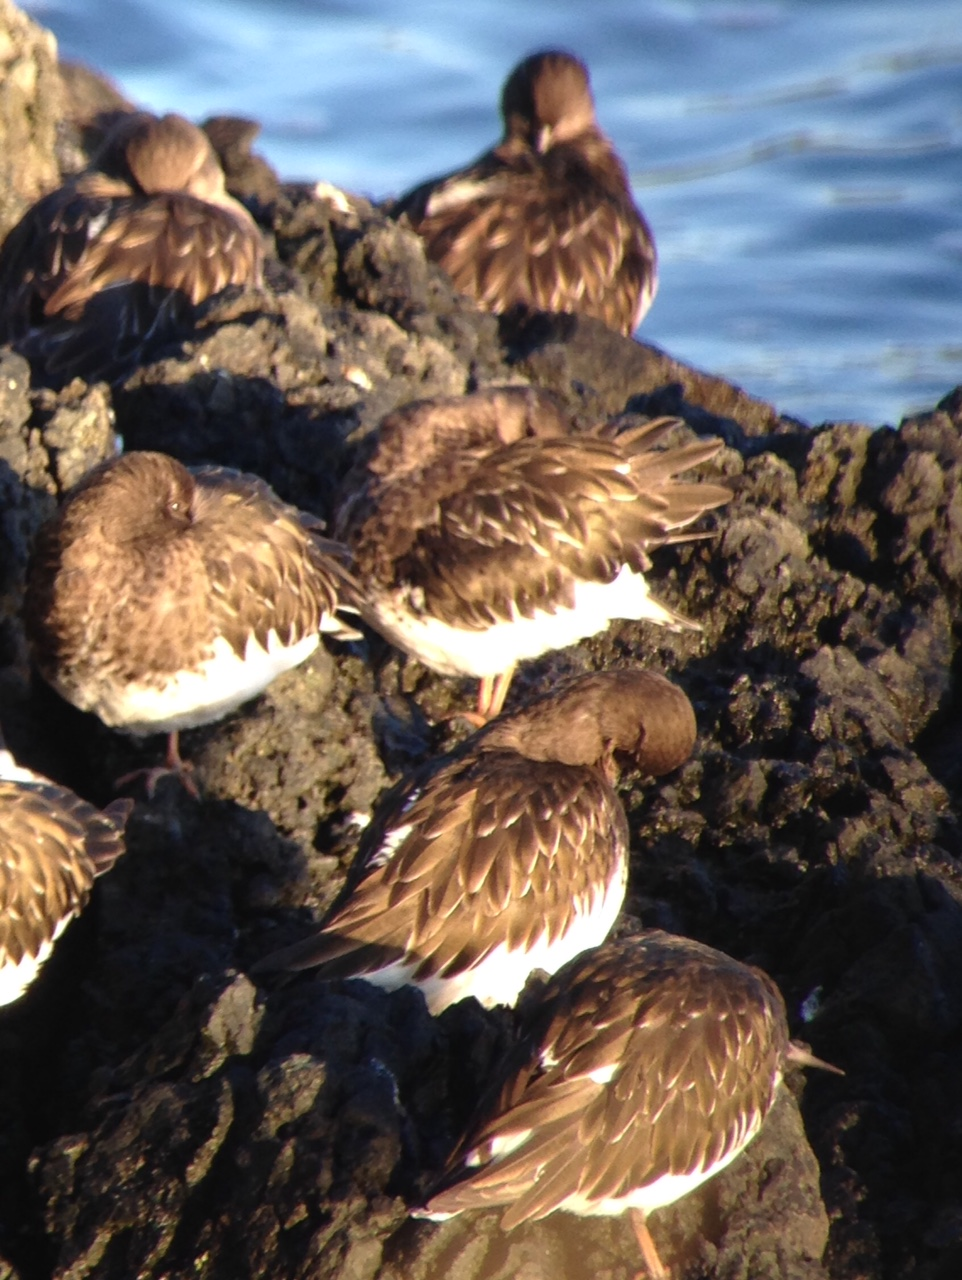 Black Turnstones / Ts'iik'alt'axung in the Scope